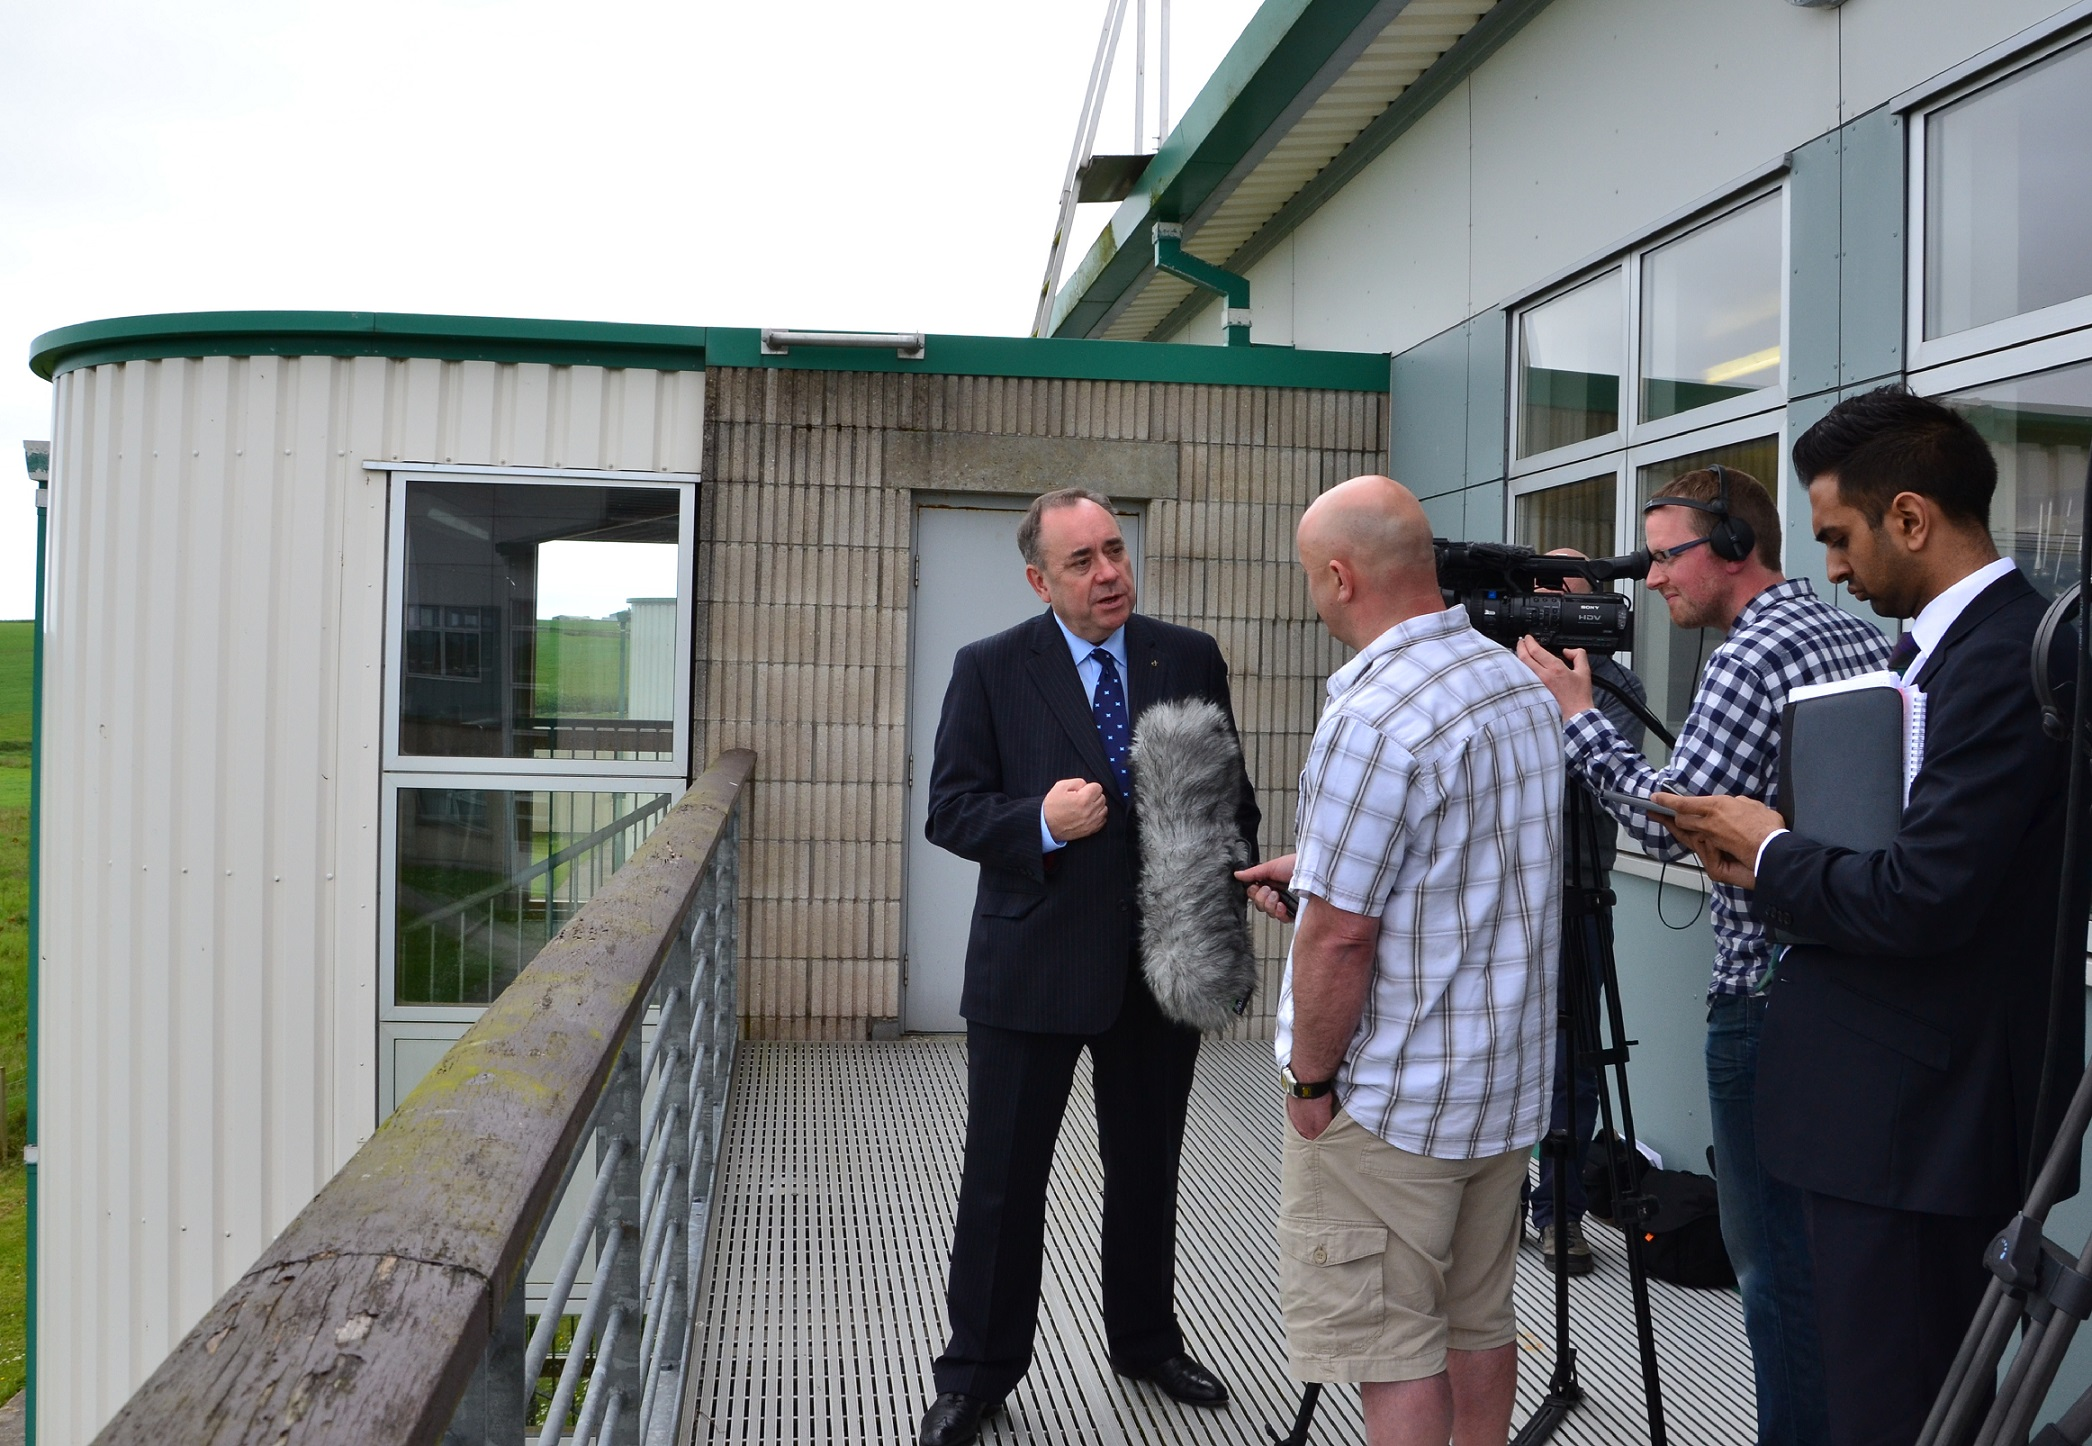 First minister Alex Salmond is quizzed by BBC Radio Orkney following the launch at Orkney College on Monday morning. Photo: Shetnews